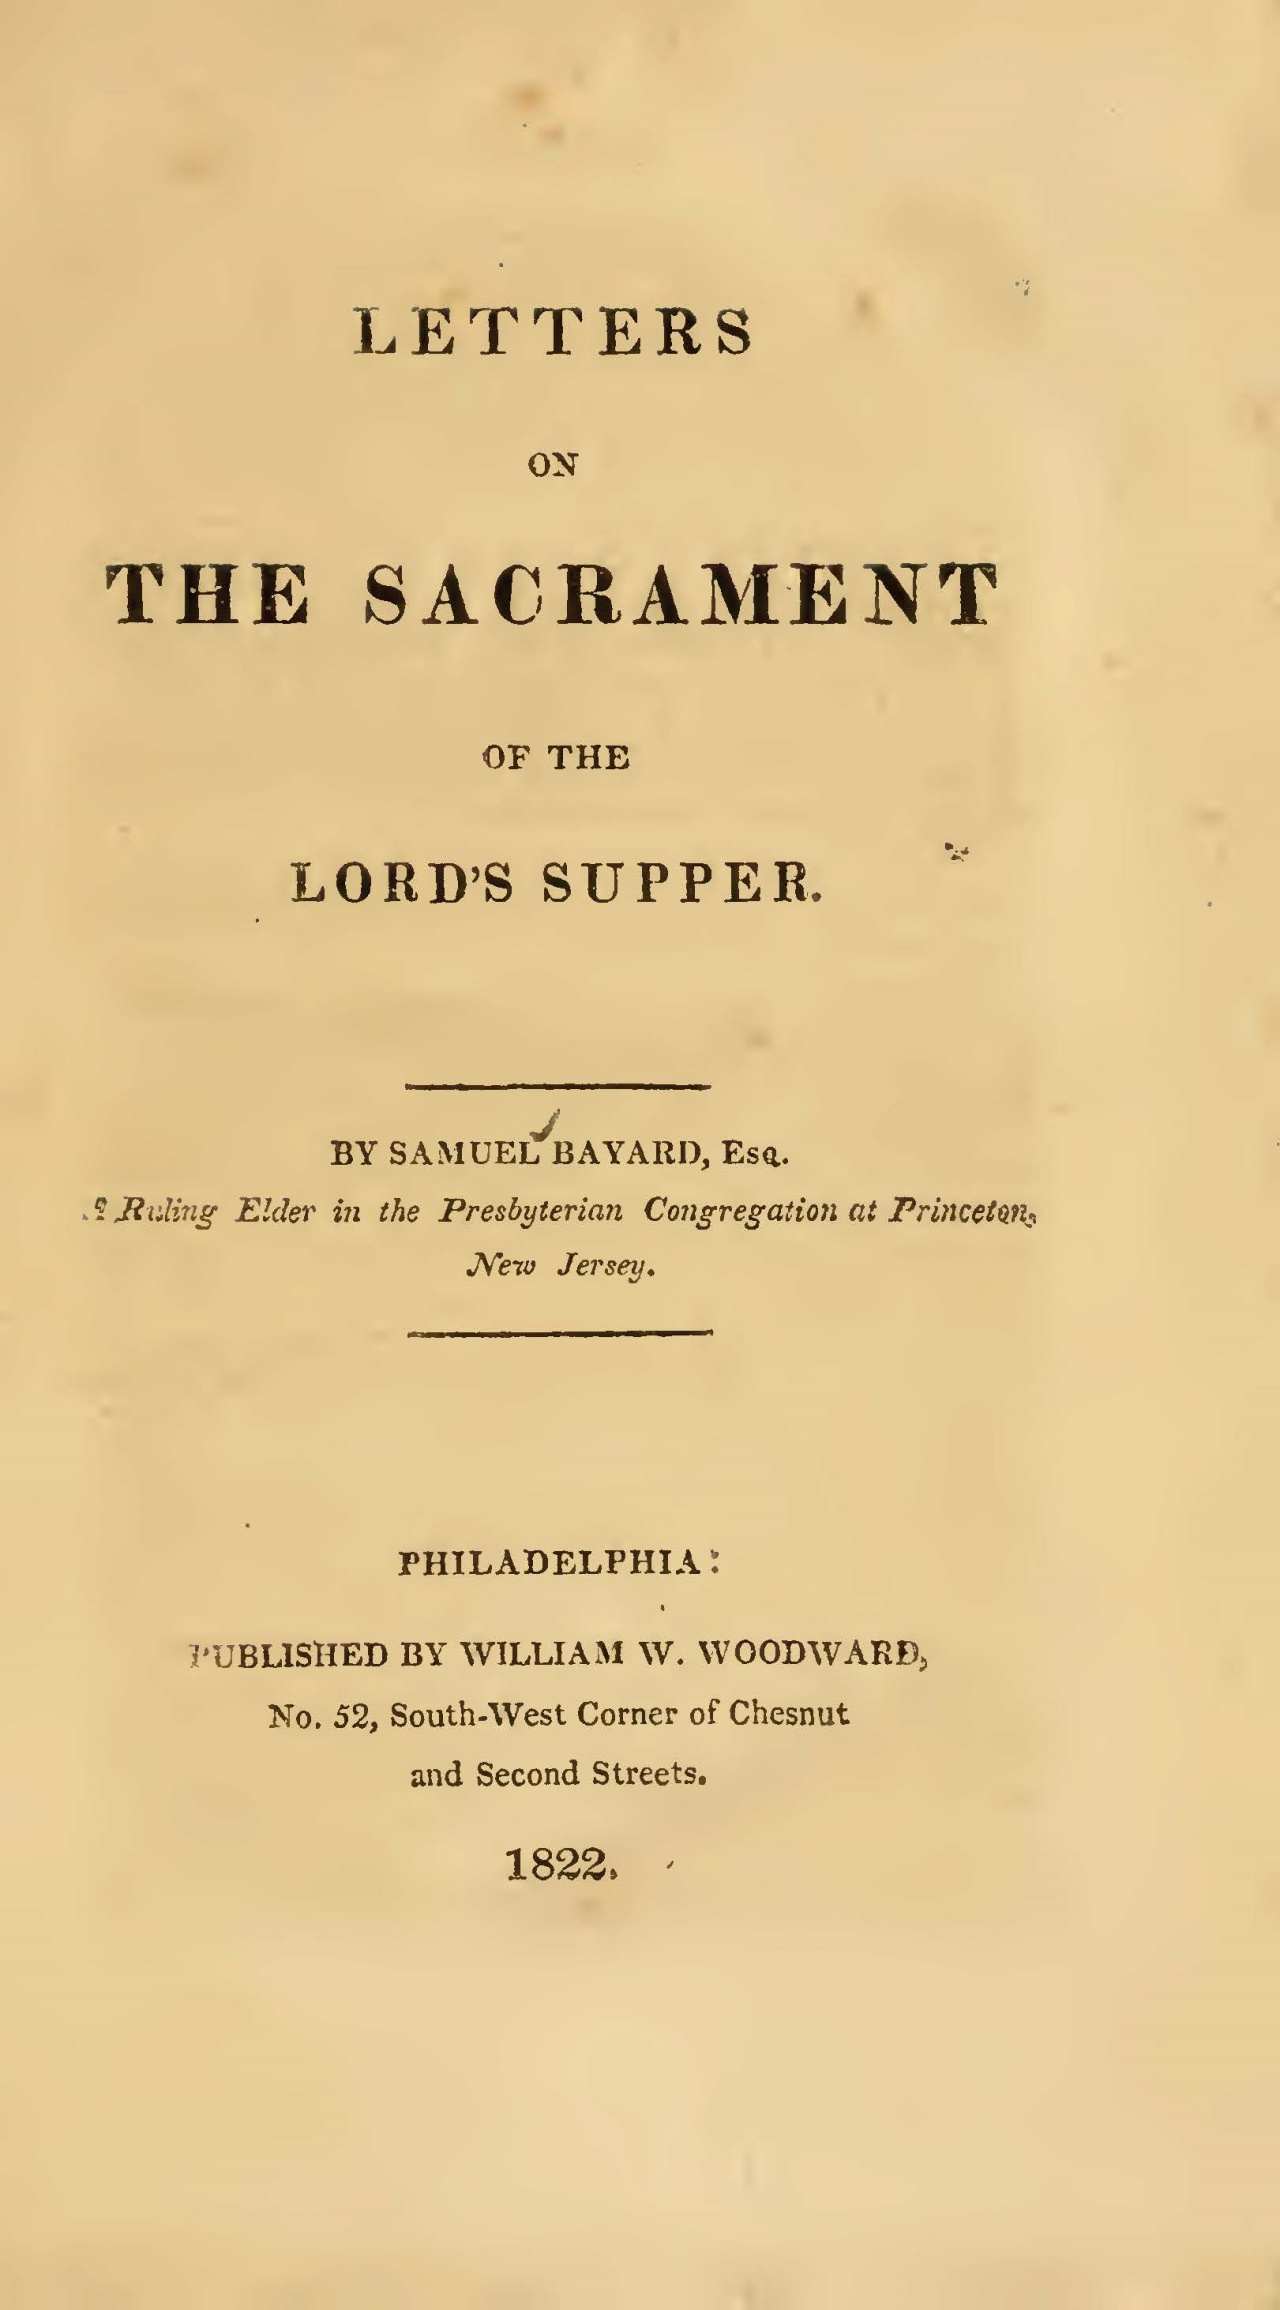 Bayard, Samuel, Letters on the Sacrament of the Lord's Supper Title Page.jpg